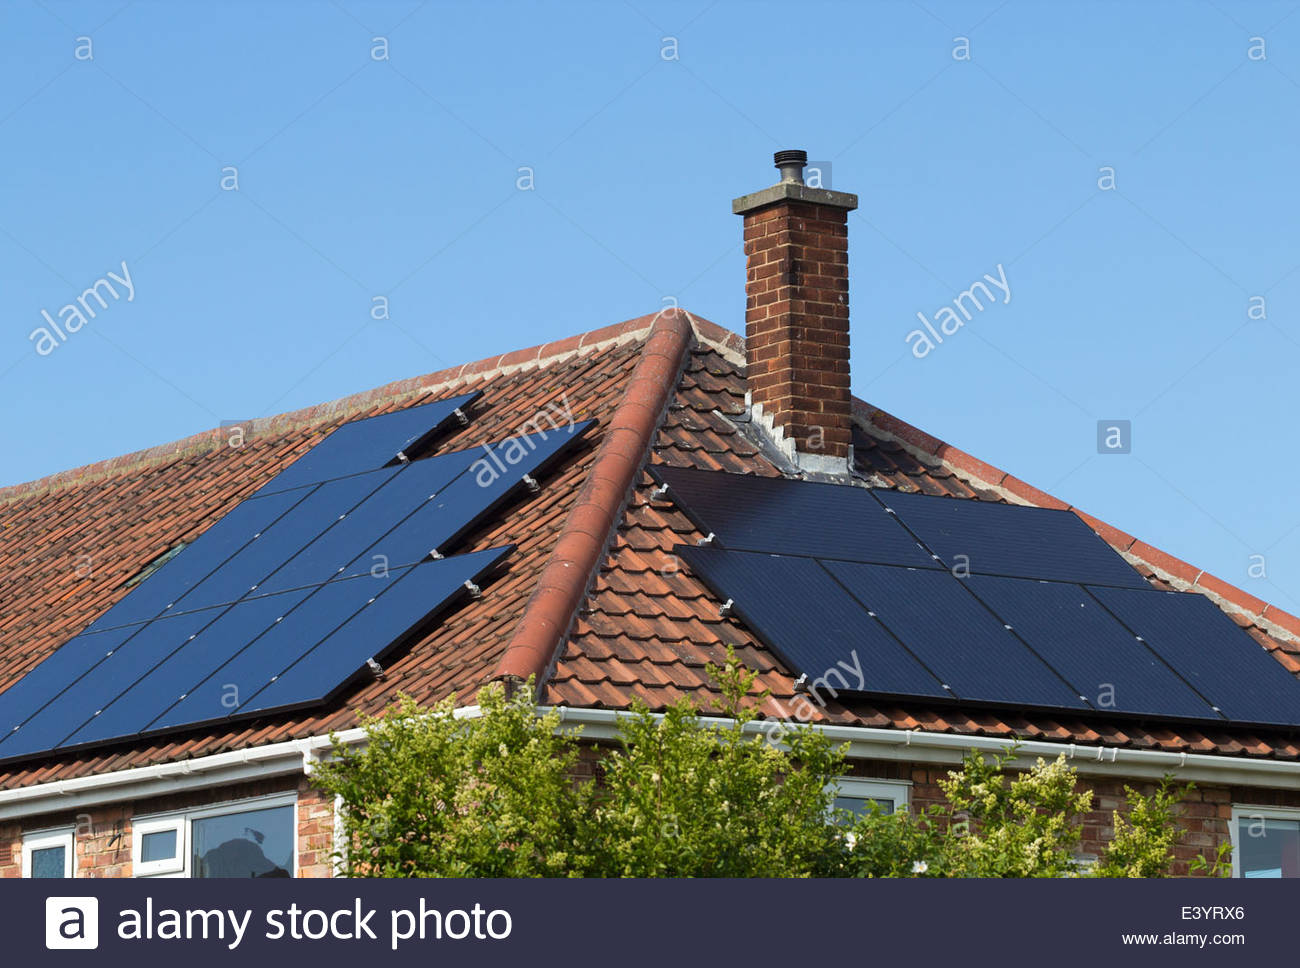 Solar panels on house roof. UK - Stock Image